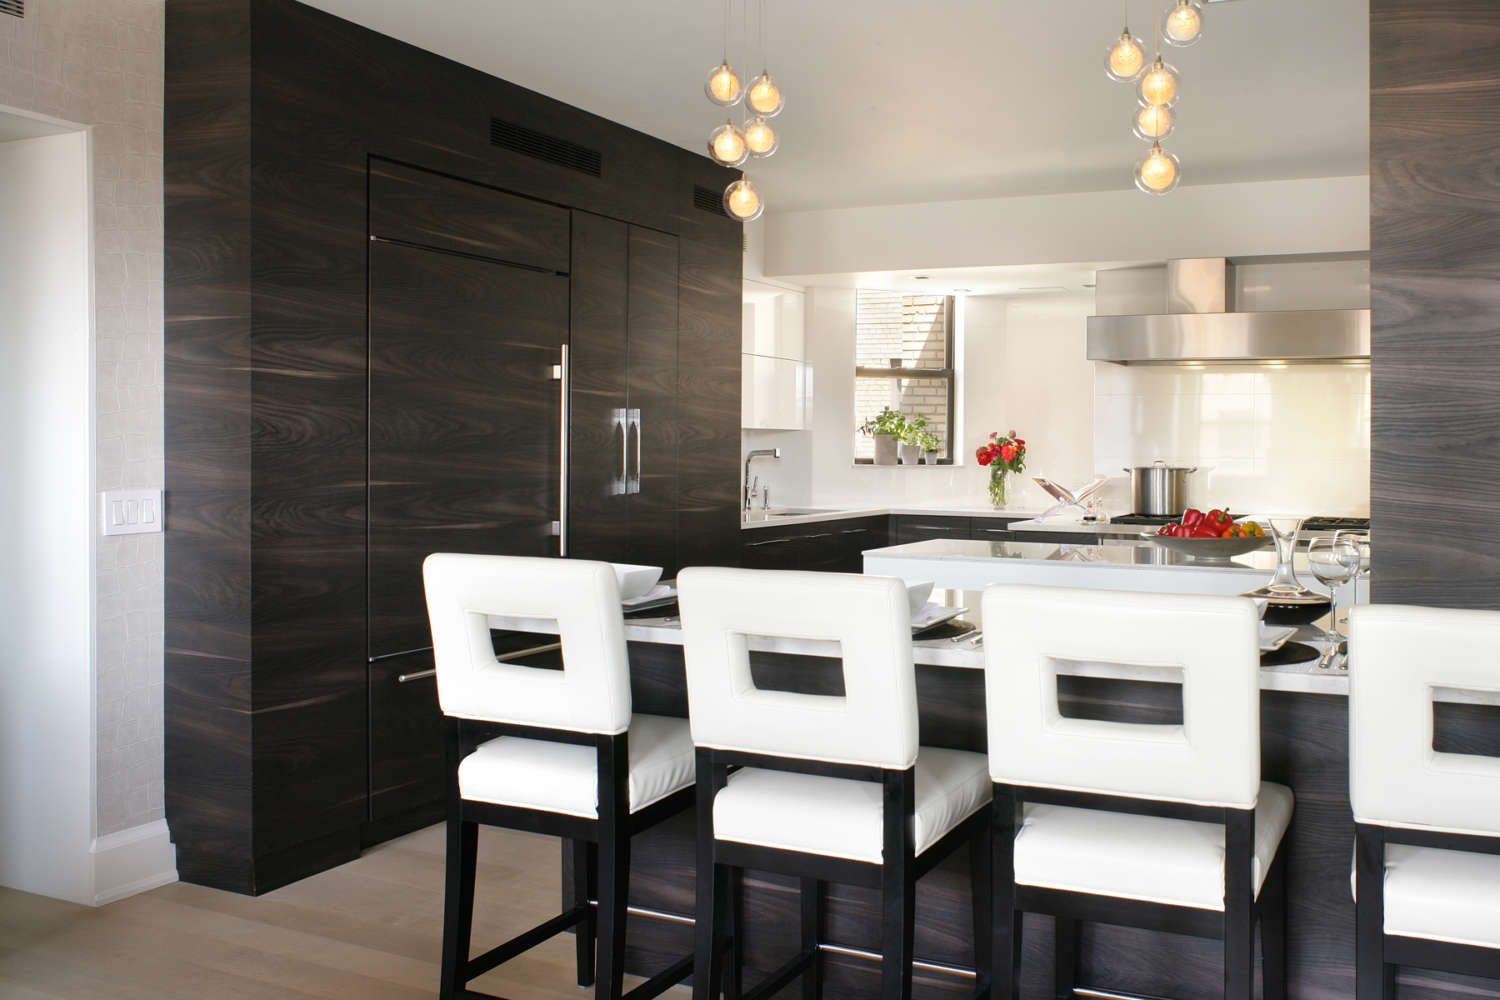 Contemporary kitchen features fully custom flat panel, frameless Artcraft Cabinetry in mix of pure white gloss and Yosemite Scuro laminate, and island and a large peninsula with seating. Design by RitaLuisa Garces of Bilotta Kitchens.